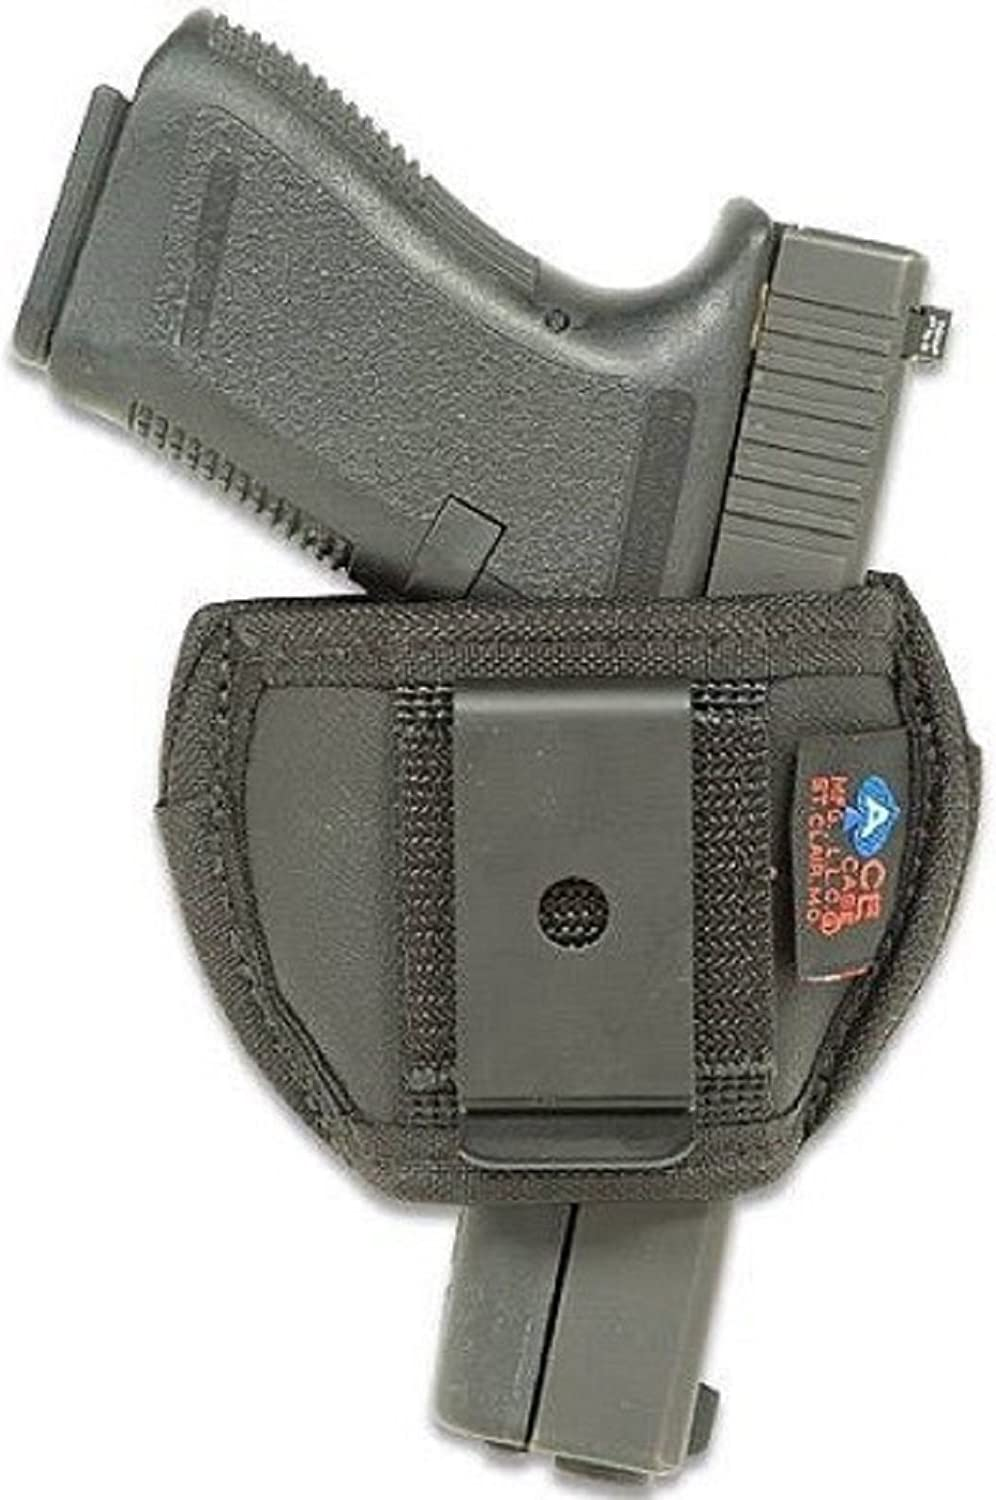 NEW ACE CASE IWB CONCEALED CARRY HOLSTER HONOR DEFENSE 9MM  *100/% USA MADE*